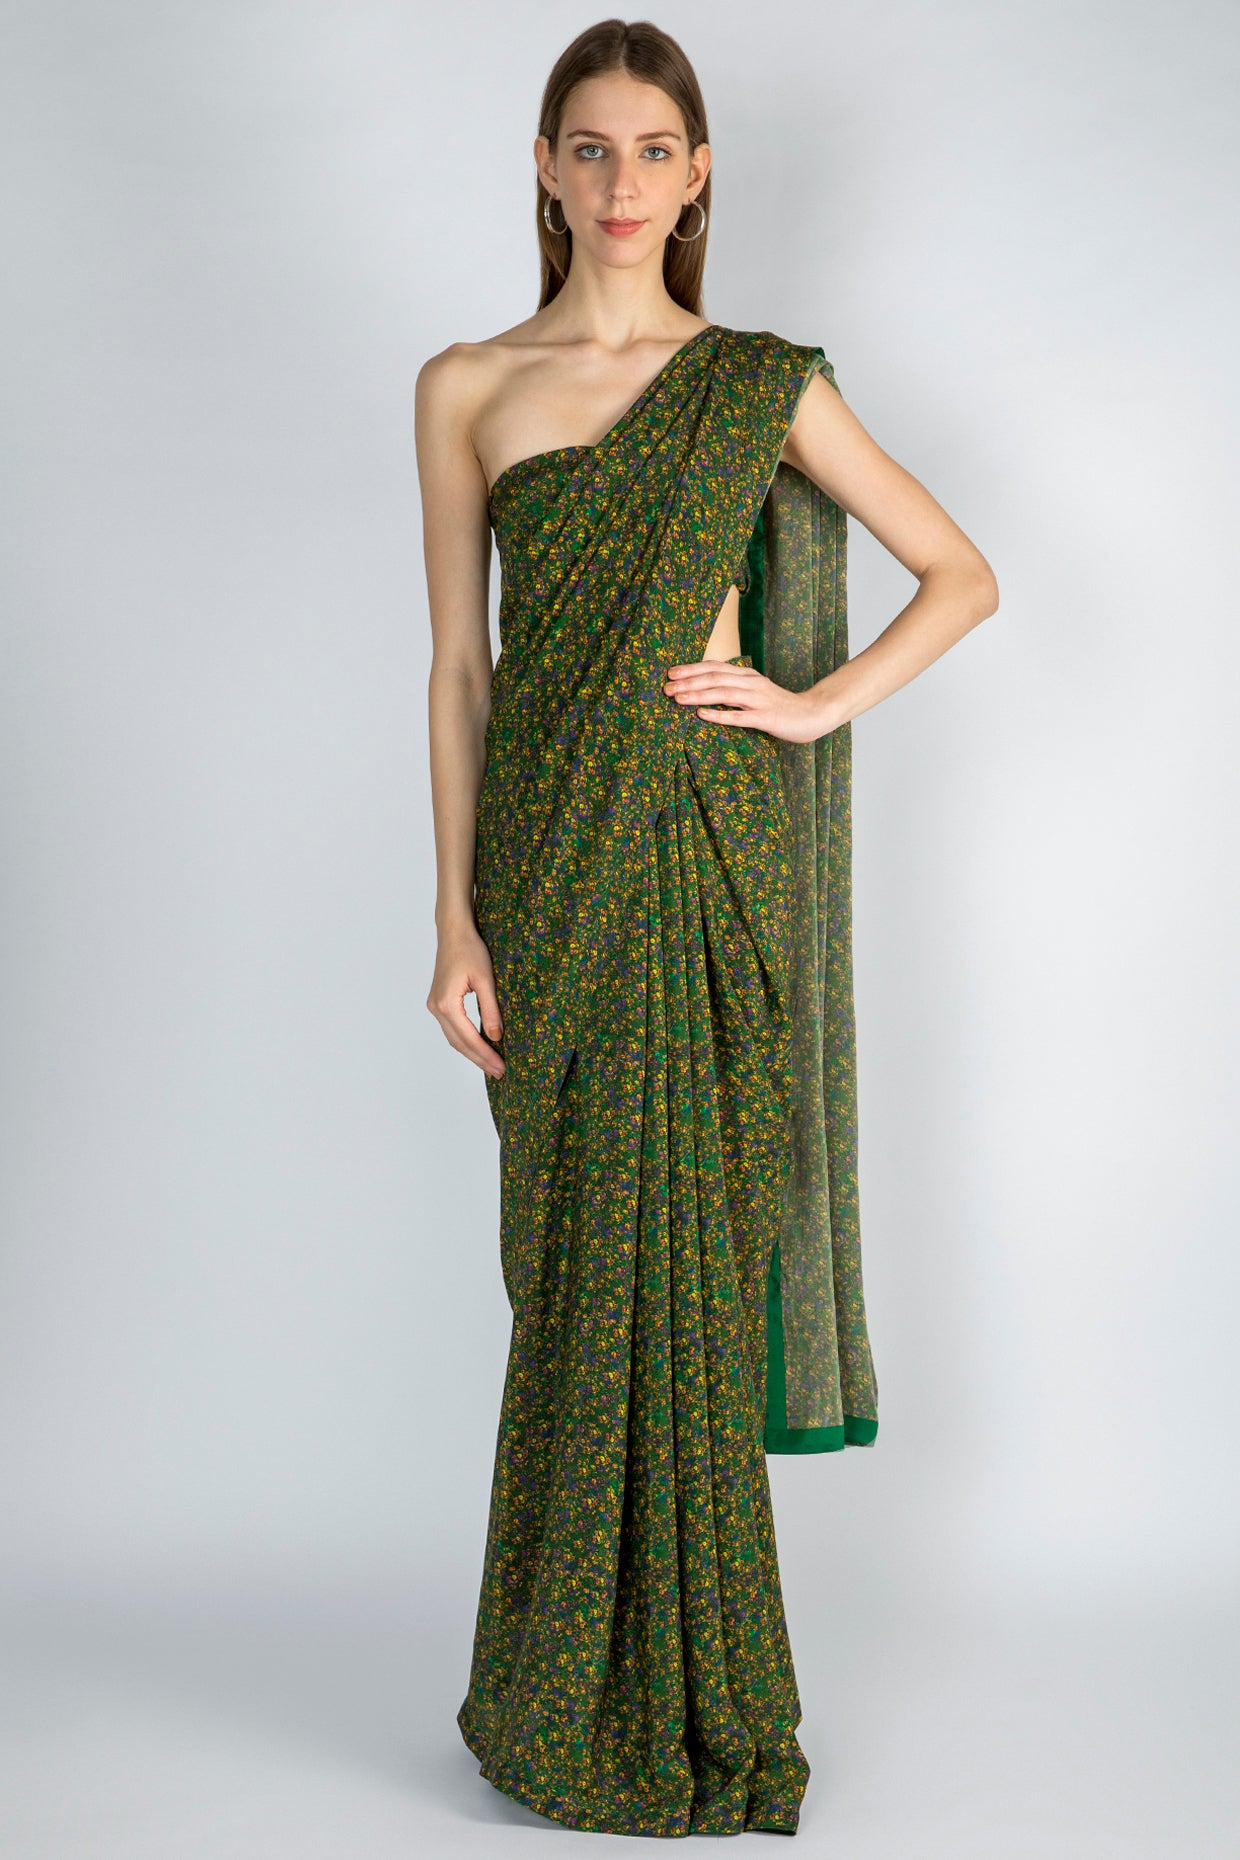 EMERALD FLORAL RUSH SARI & BLOUSE PIECE - The Grand Trunk